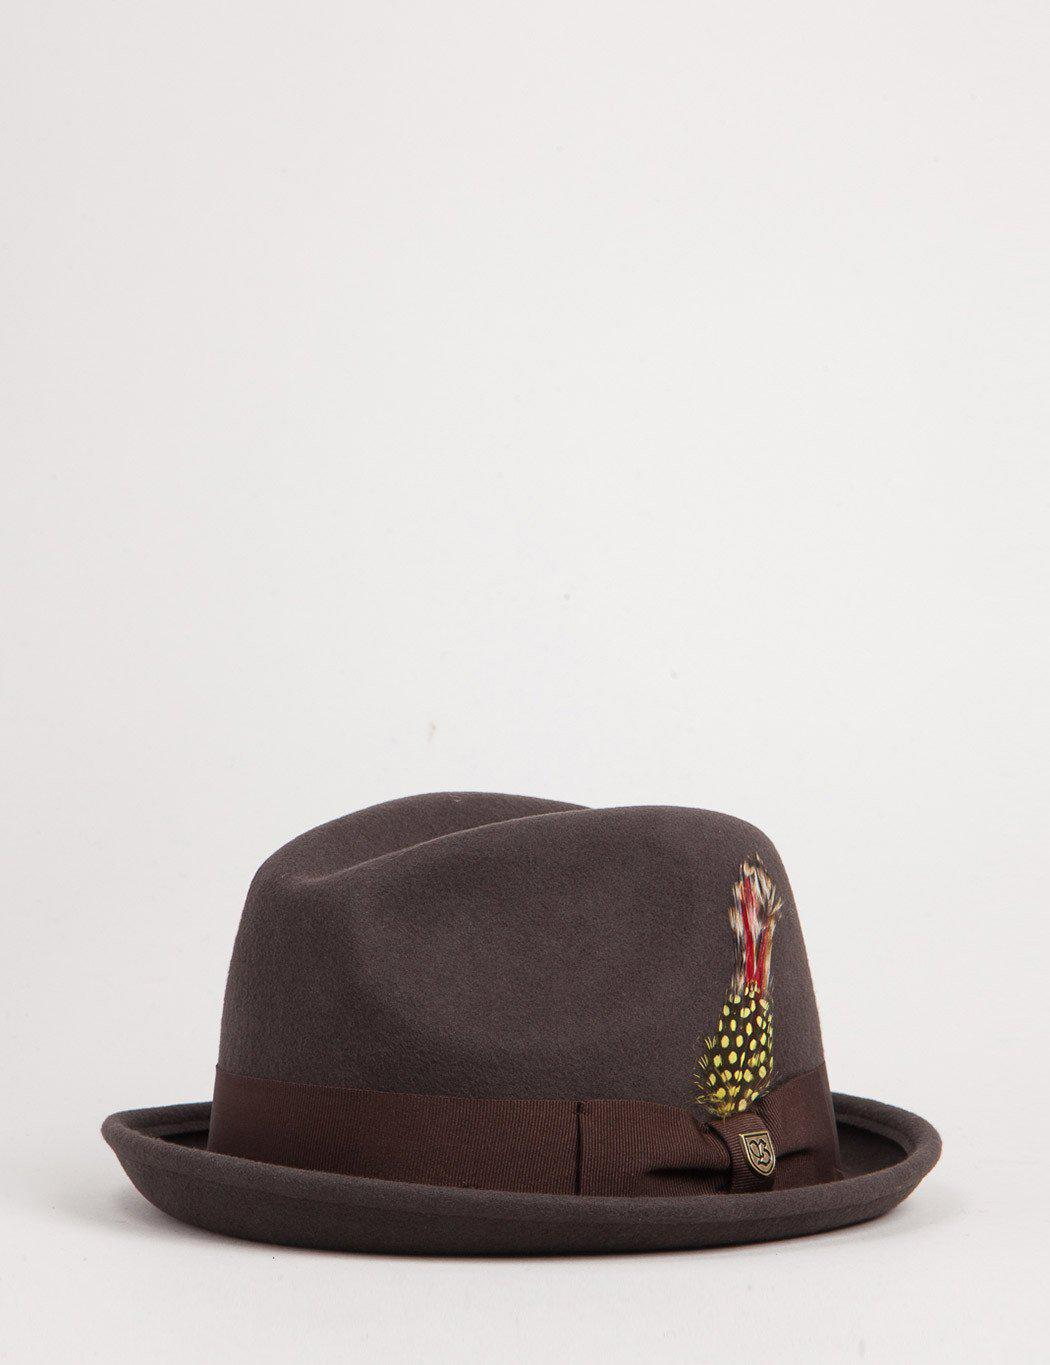 Lyst - Brixton Gain Trilby Hat in Brown for Men b48615d6bcf9